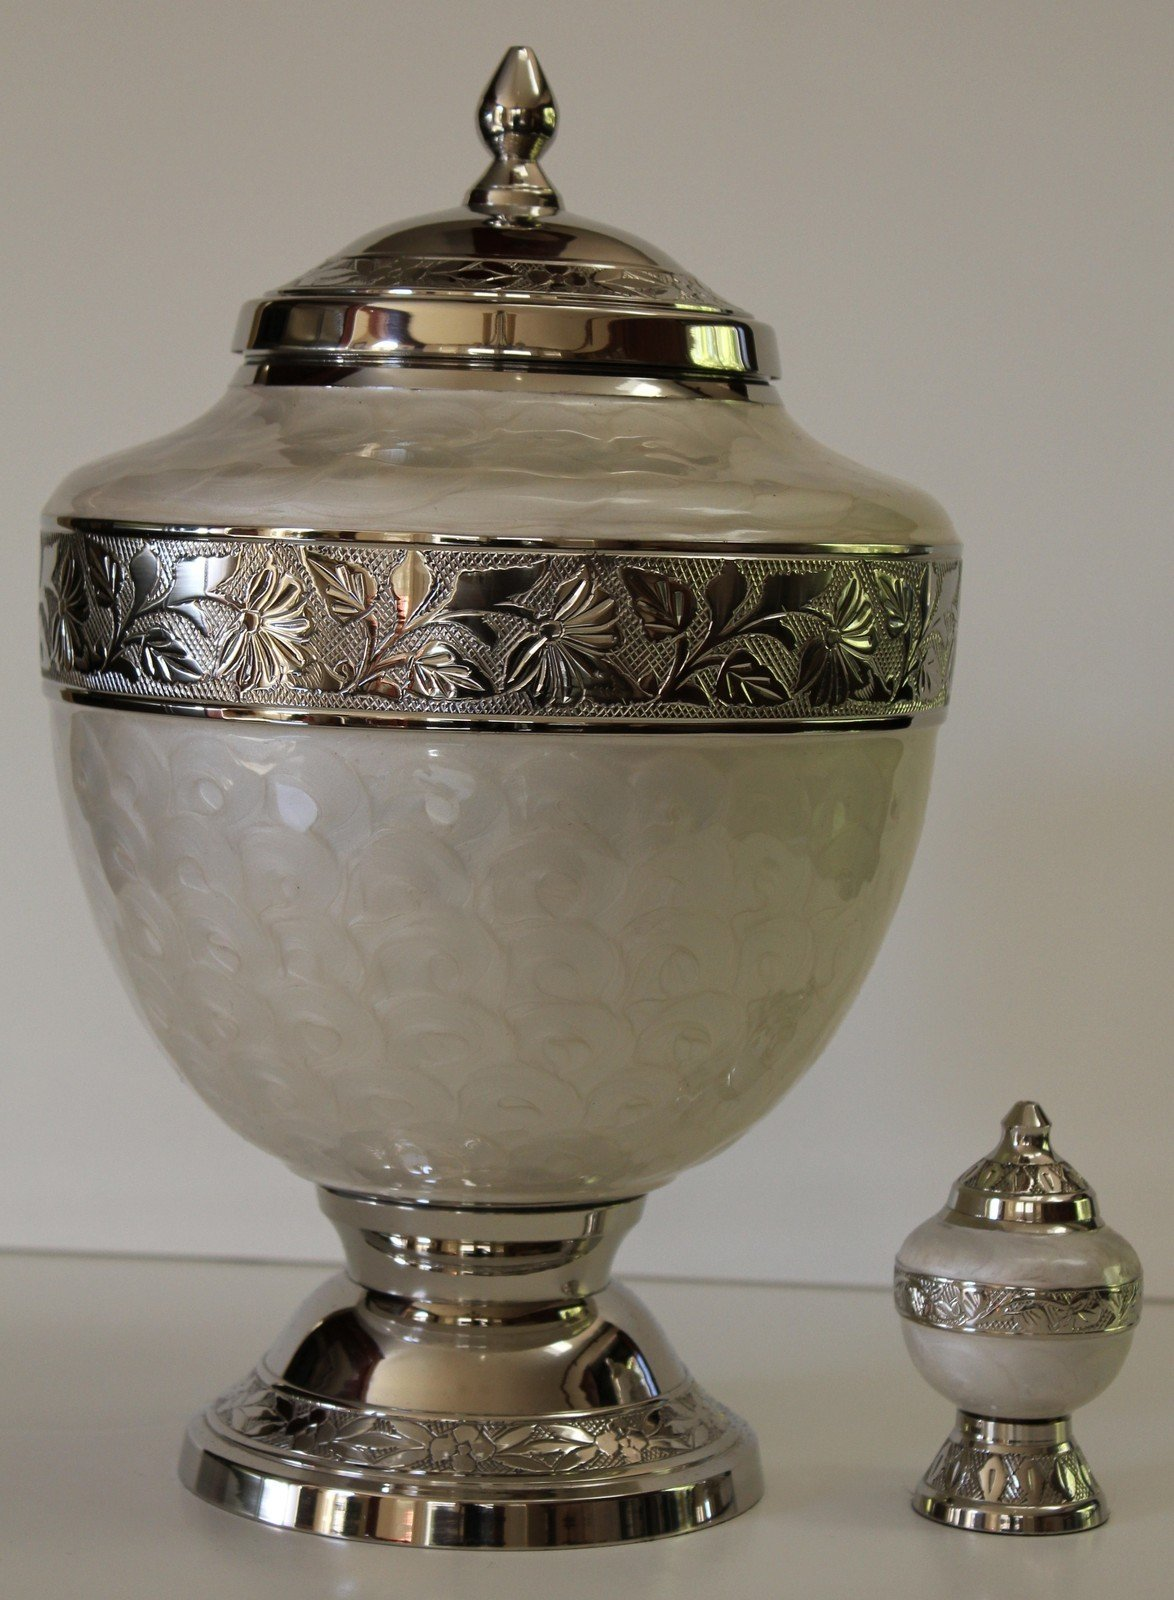 Cremation Urns, Adult Funeral Cremation Urn with Keepsake, Urn for Human Ashes by NWA